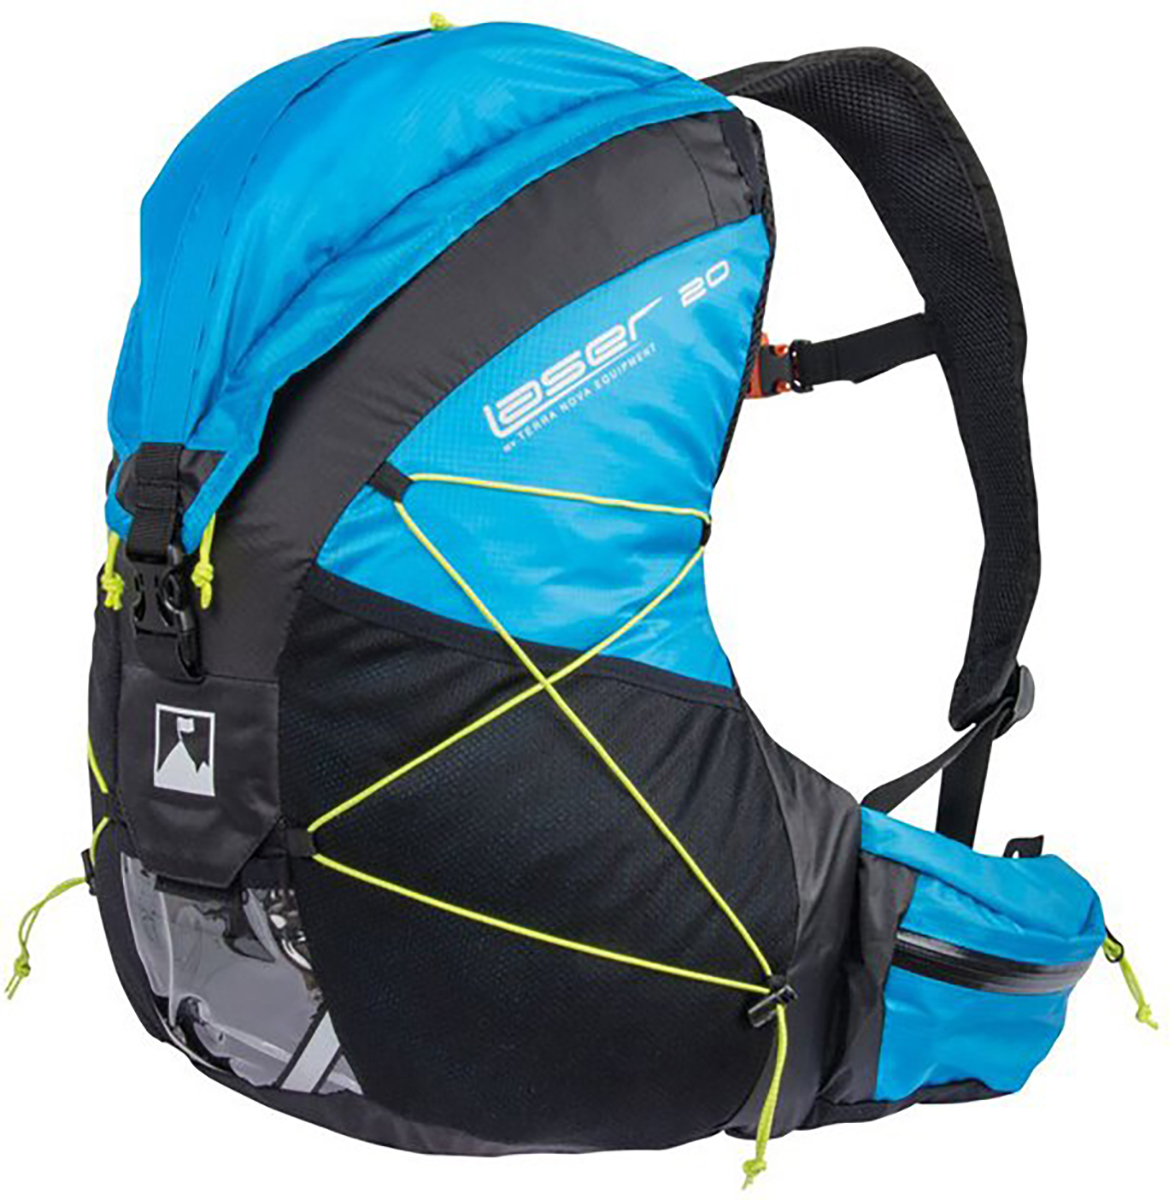 Terra Nova Laser 20 Backpack | Travel bags